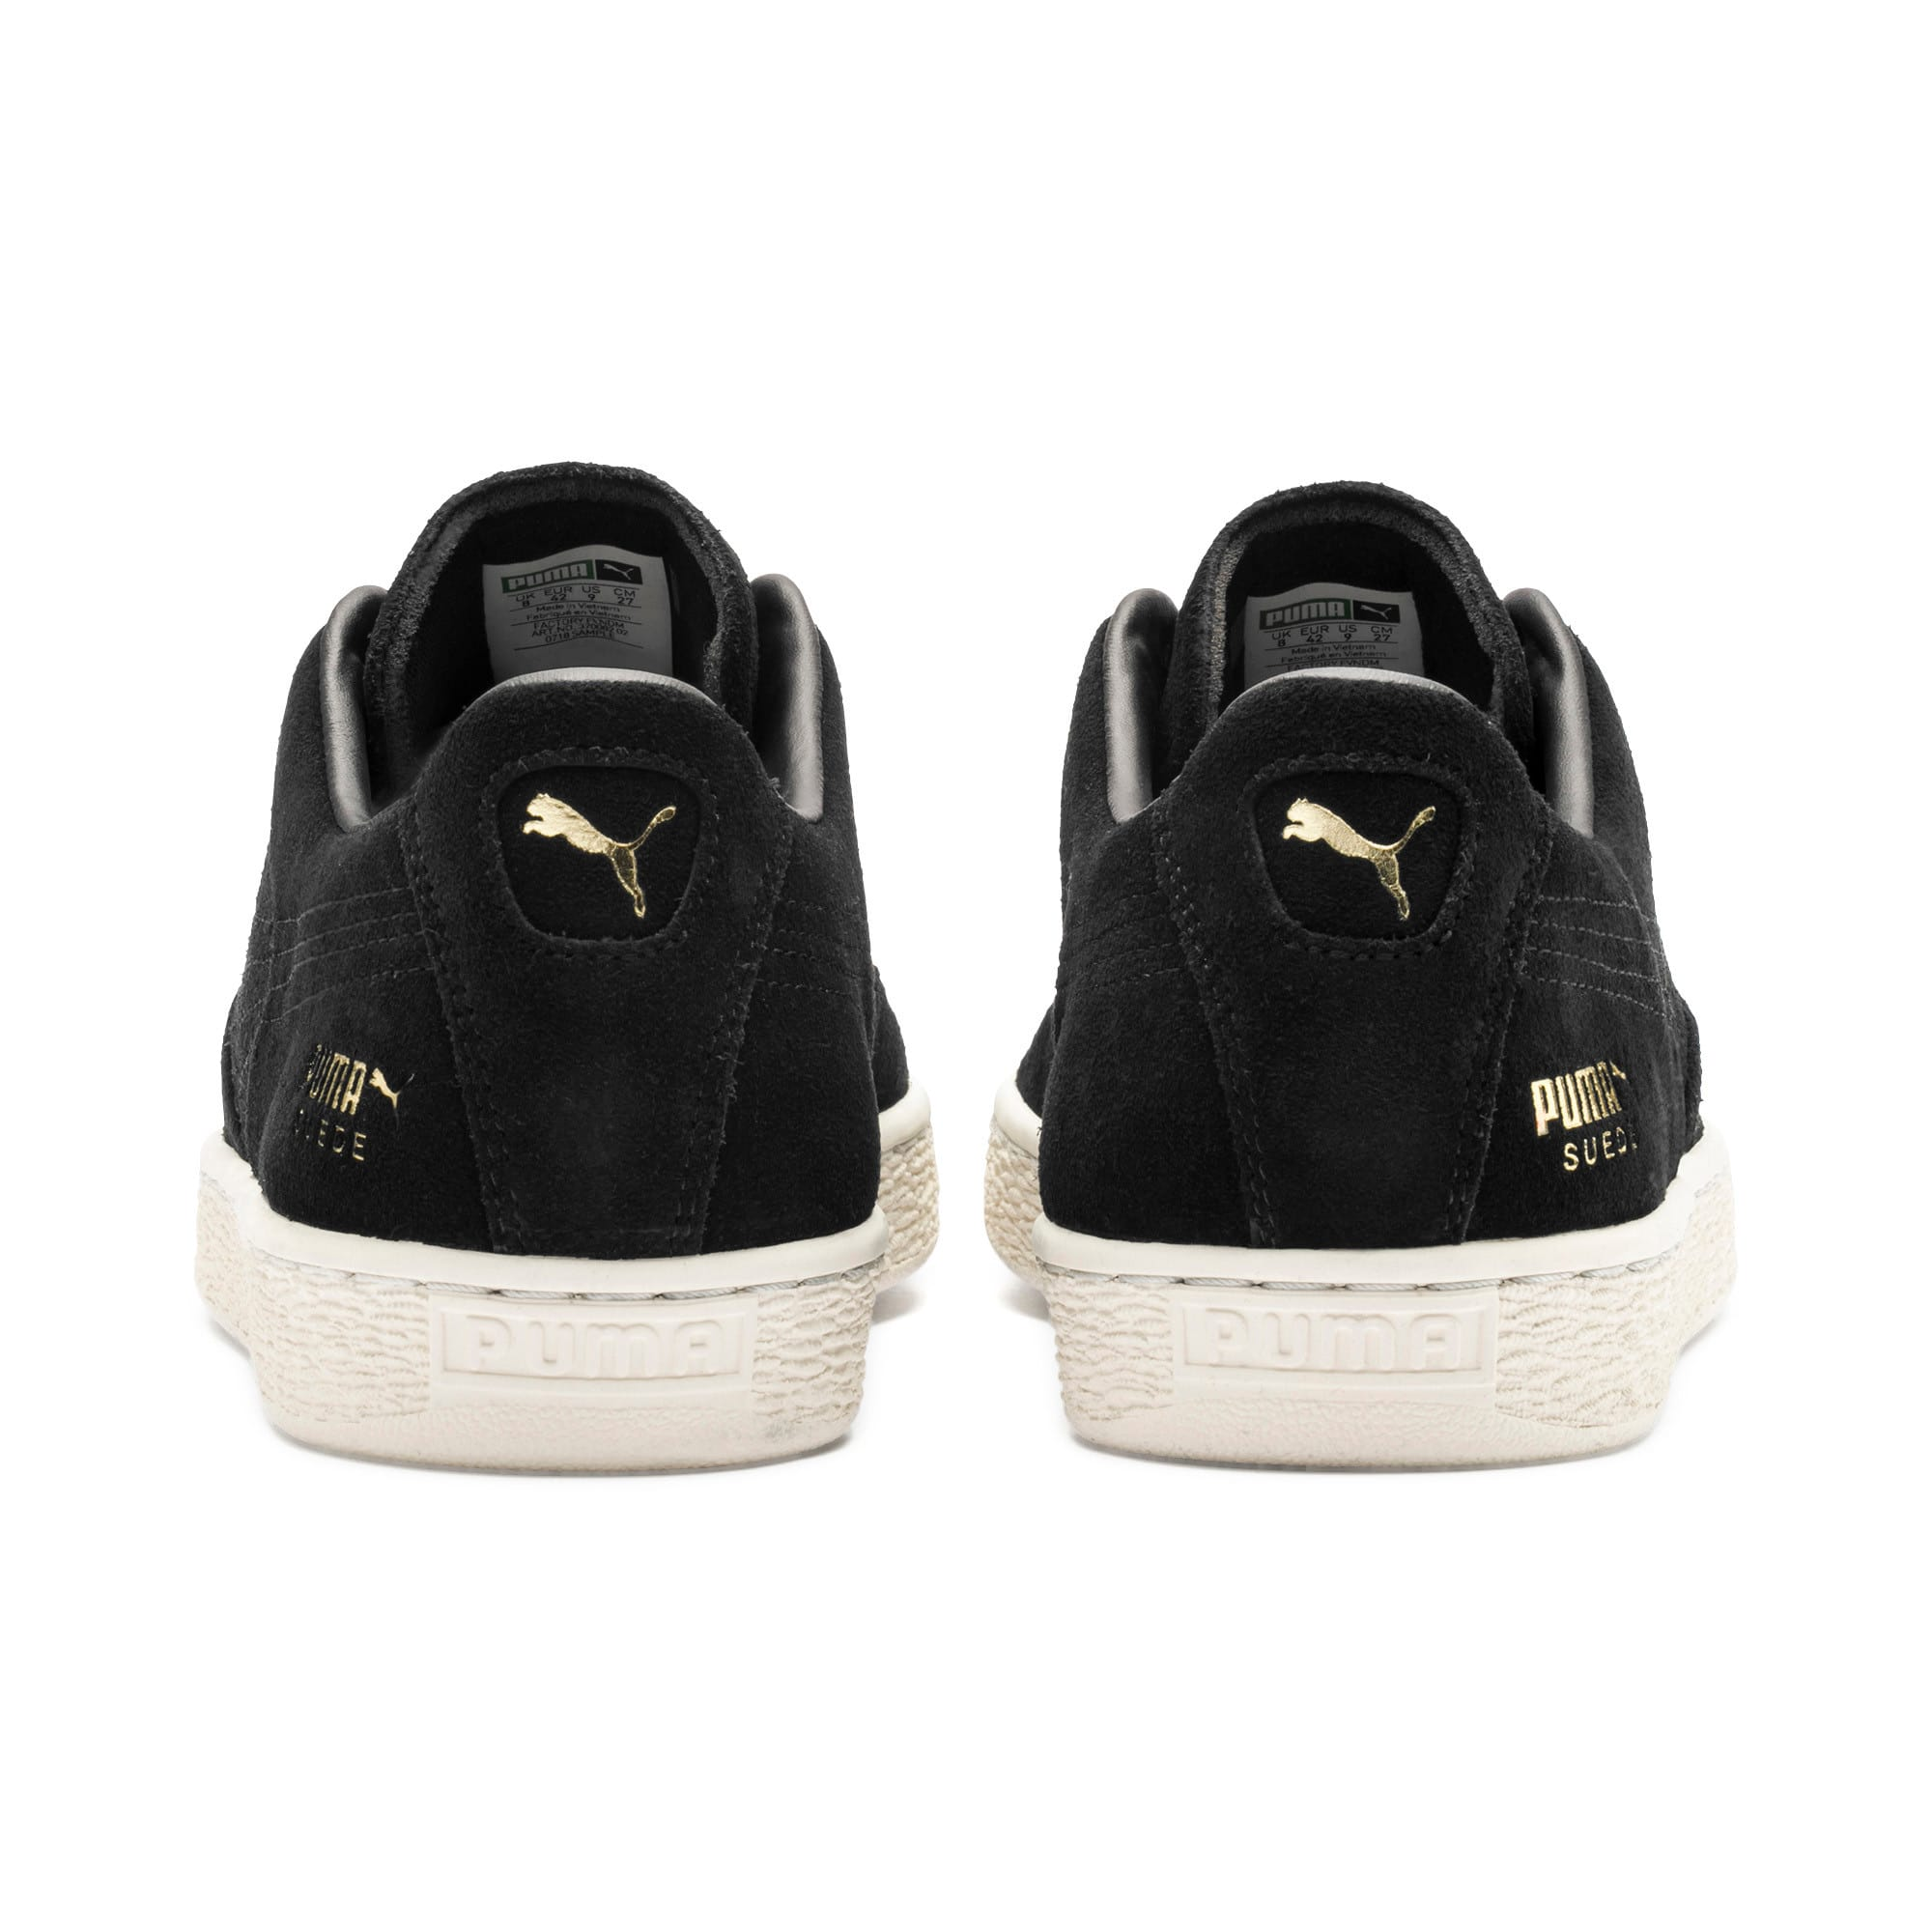 Thumbnail 4 of Suede Notch Trainers, Puma Black-White-gold, medium